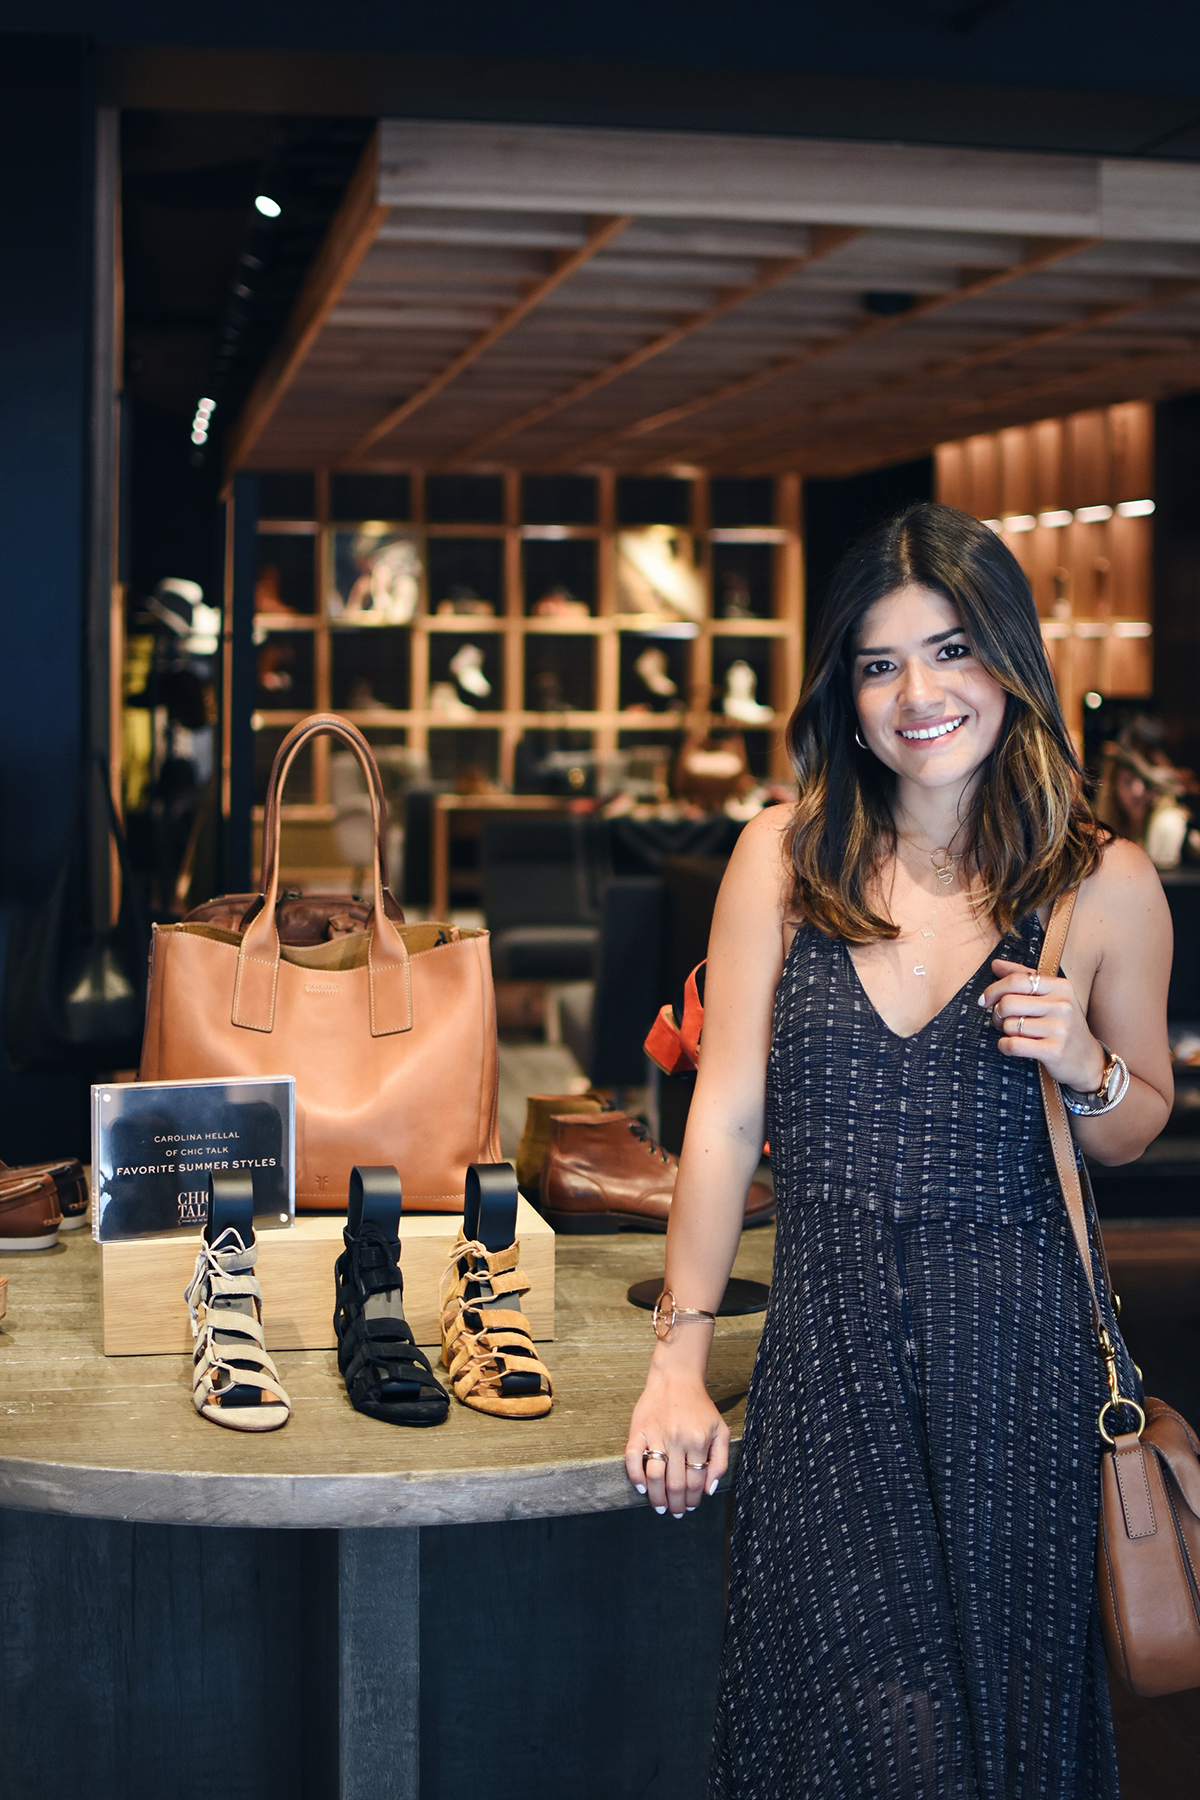 SUMMER STYLING EVENT WITH THE FRYE COMPANY